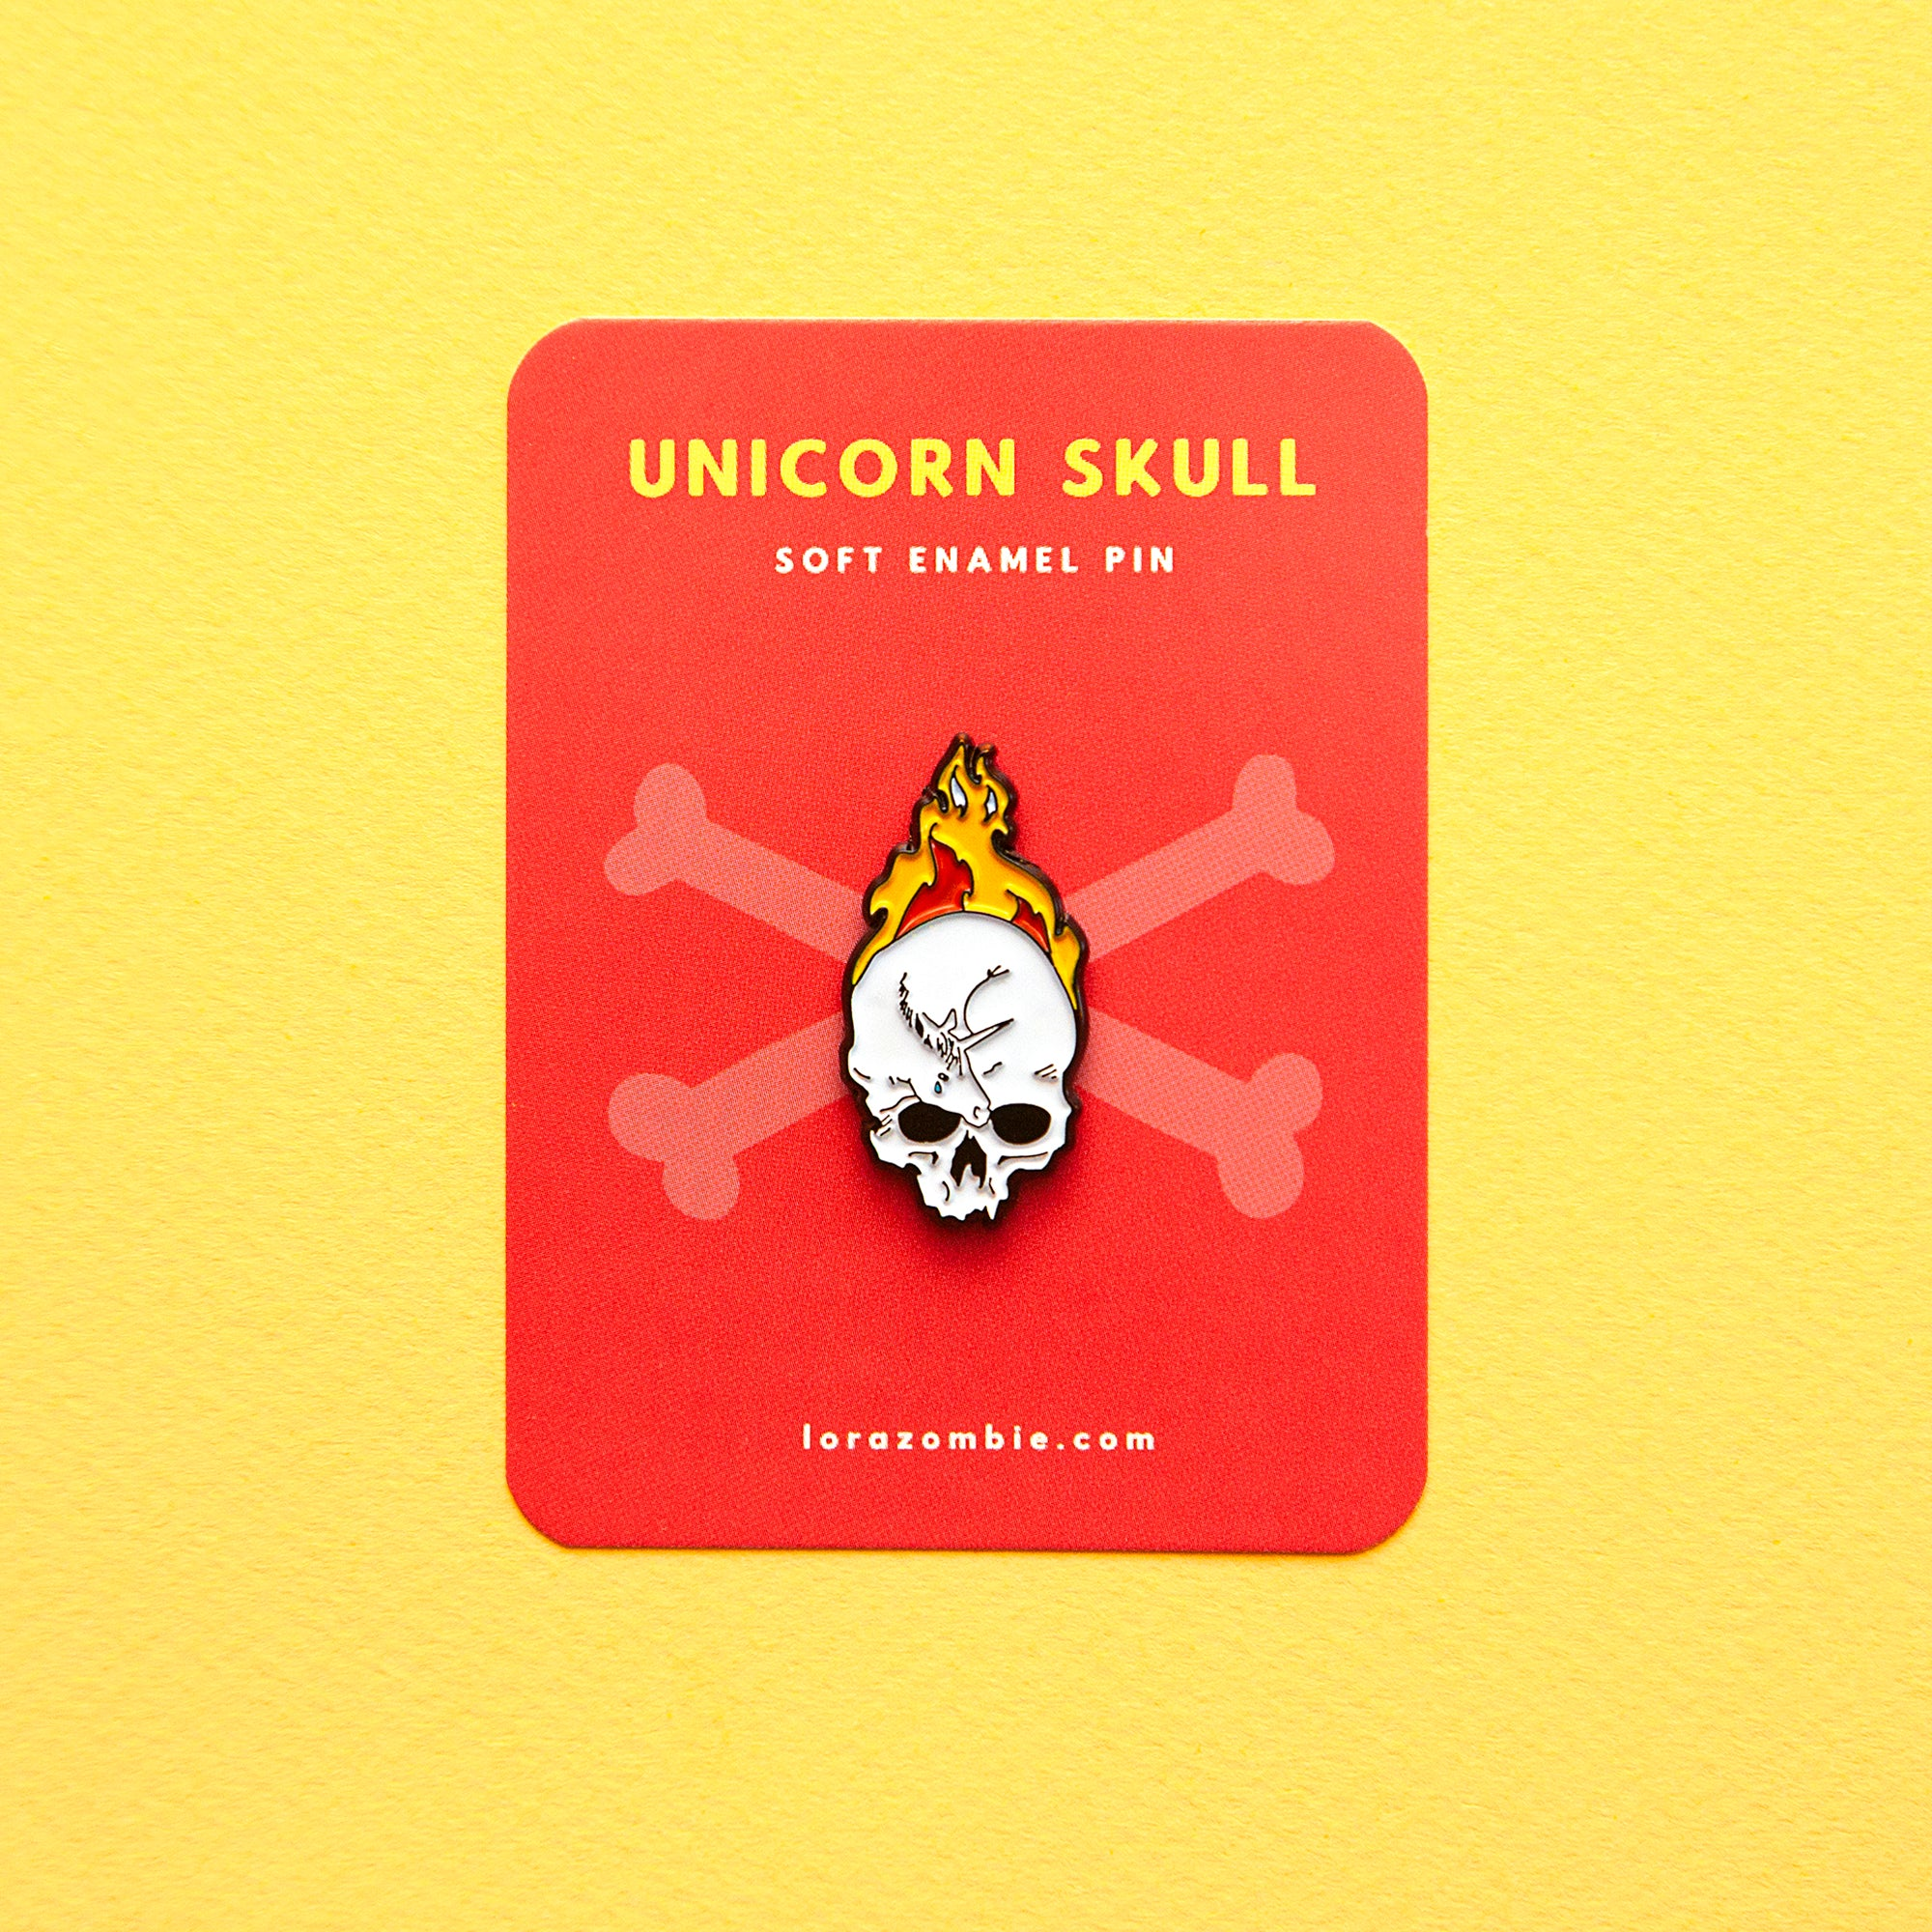 Unicorn Skull Pin